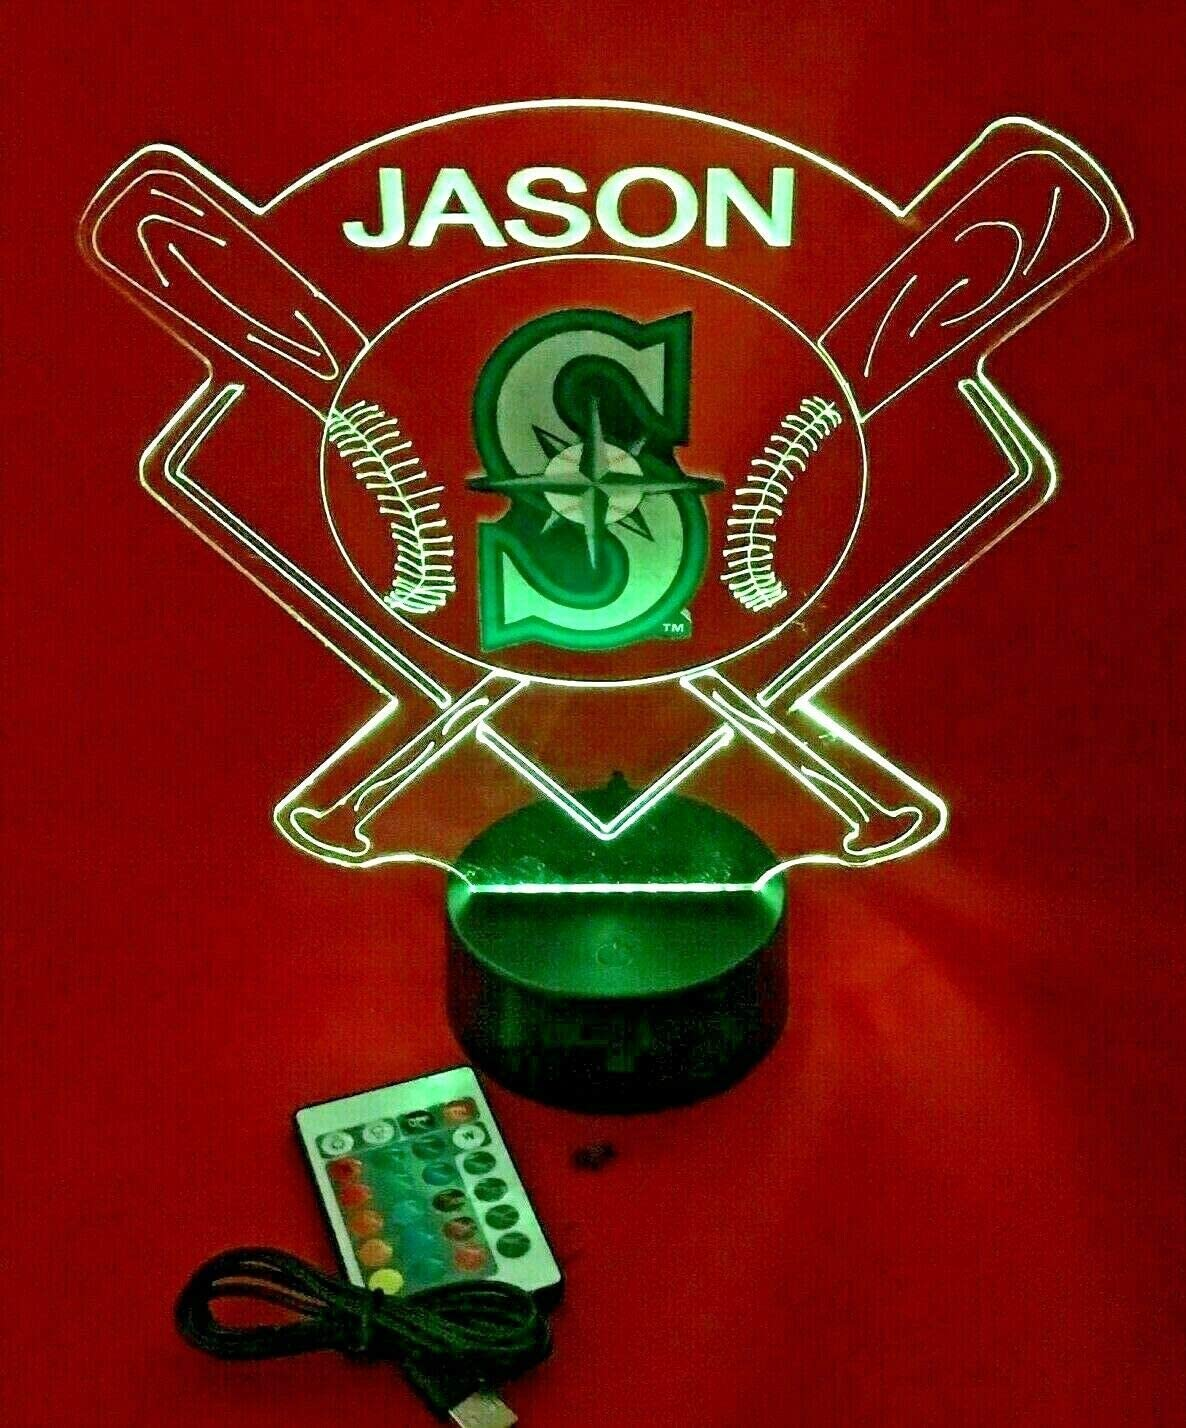 Baseball Night Light Up Lamp LED Lamp Personalized Handmade Stadium with Bats Free Personalization and Remote, Men Man Boys Girls Sports Gift, 16 Color Options, and Variations! (SEA Mariners)